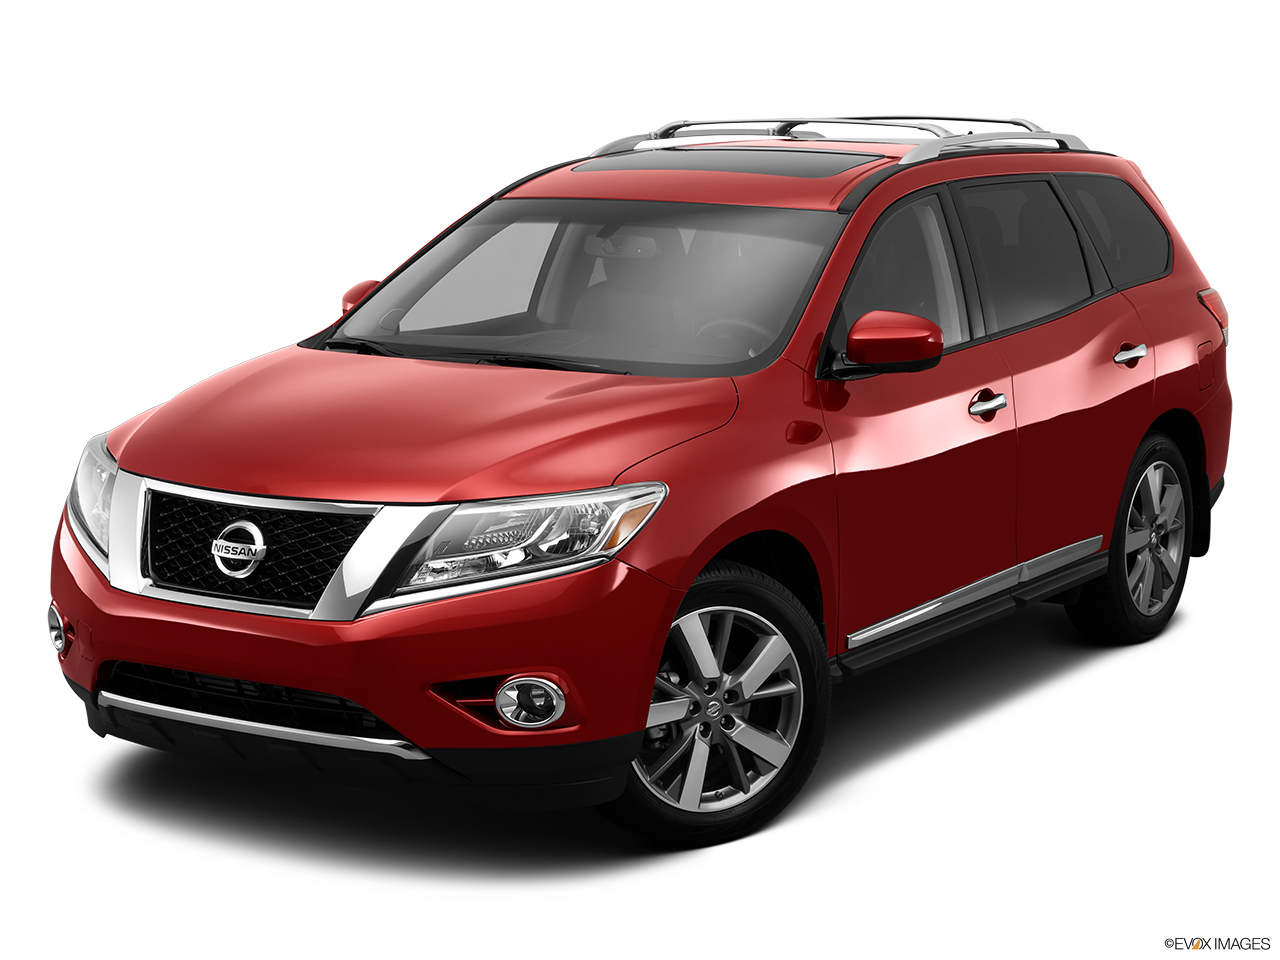 2014 nissan pathfinder 4wd platinum. Black Bedroom Furniture Sets. Home Design Ideas